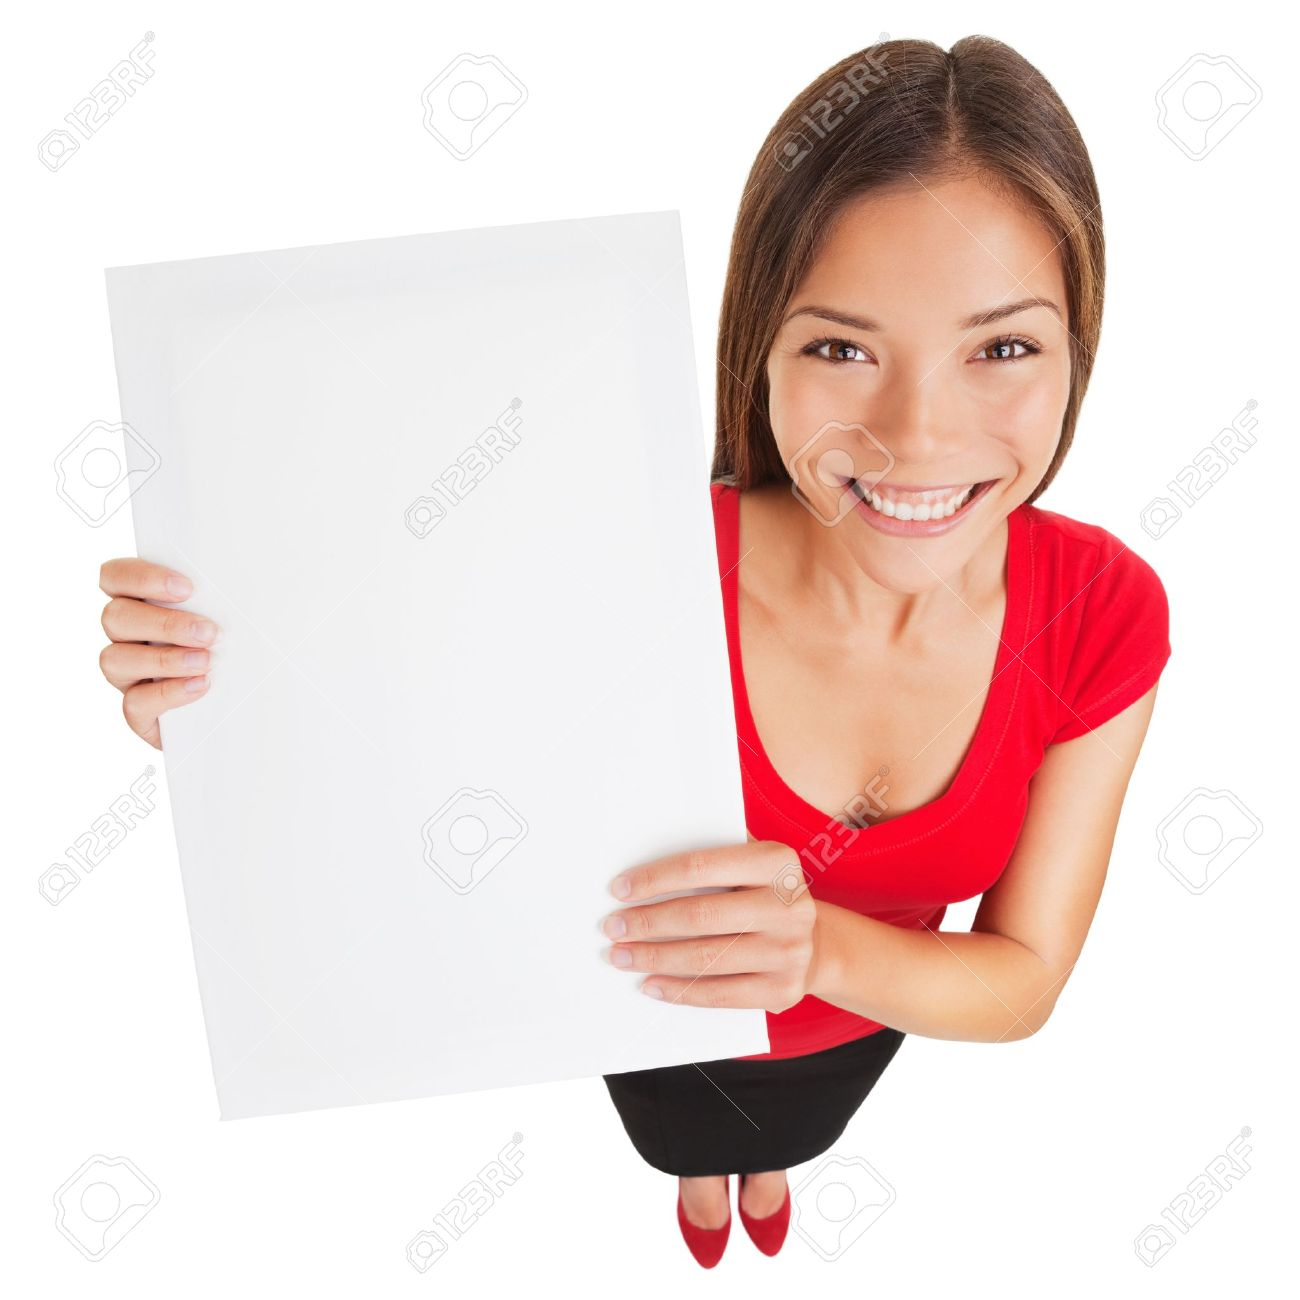 Sign woman showing blank poster billboard  Portrait in high angle perspective of beautiful charming woman with lovely smile holding up a blank white sign for your attention isolated on white background Standard-Bild - 18871927